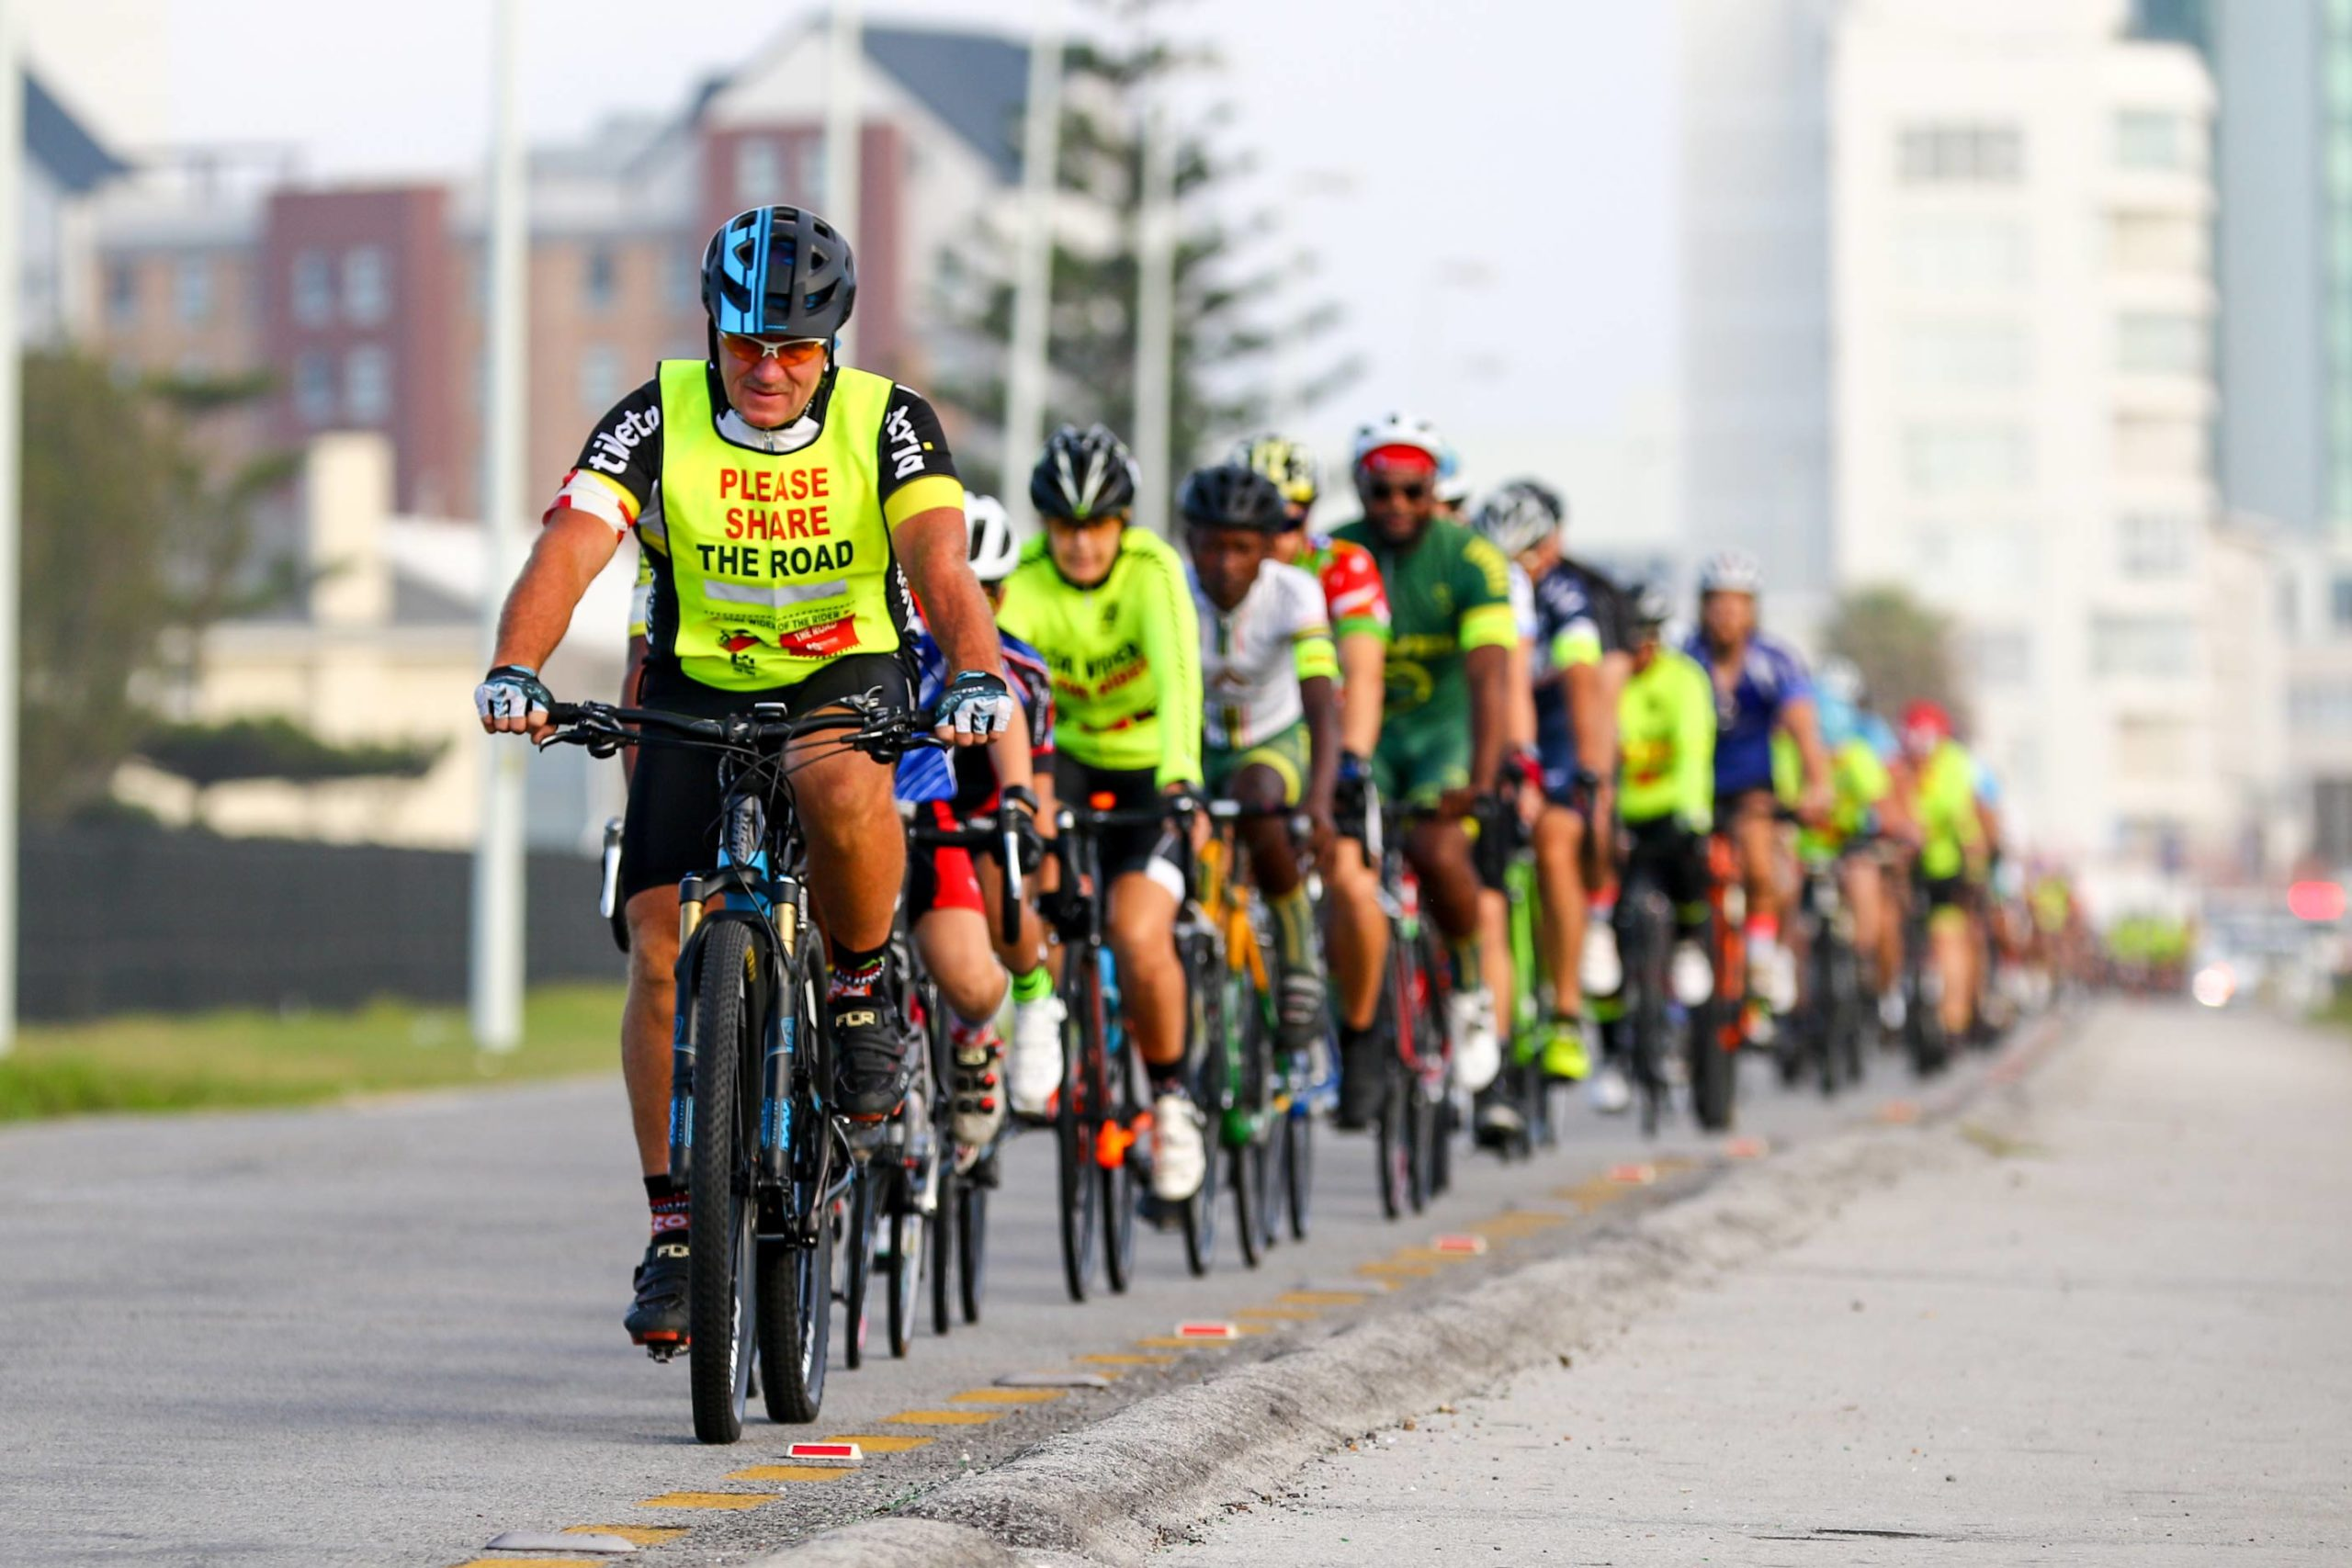 Port Elizabeth Cyclists